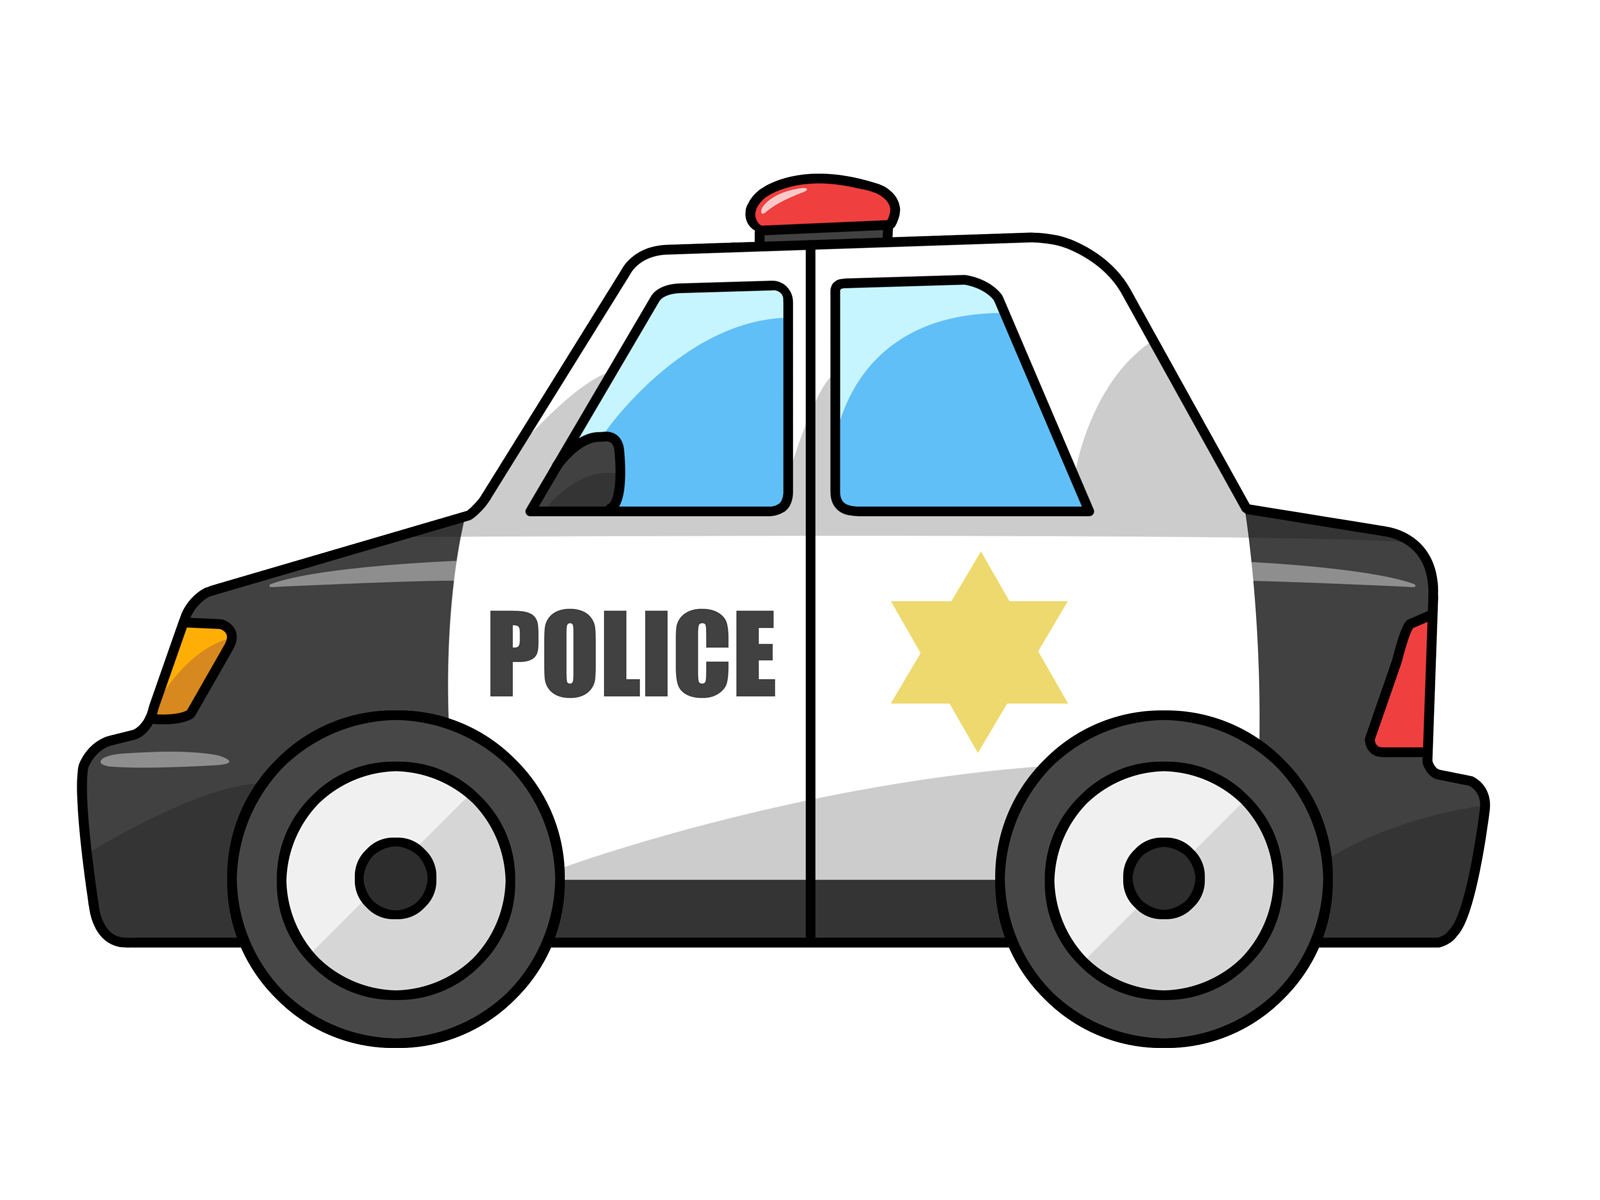 Red police car clipart image freeuse library Free to Use & Public Domain Police Car Clip Art - ClipArt Best ... image freeuse library